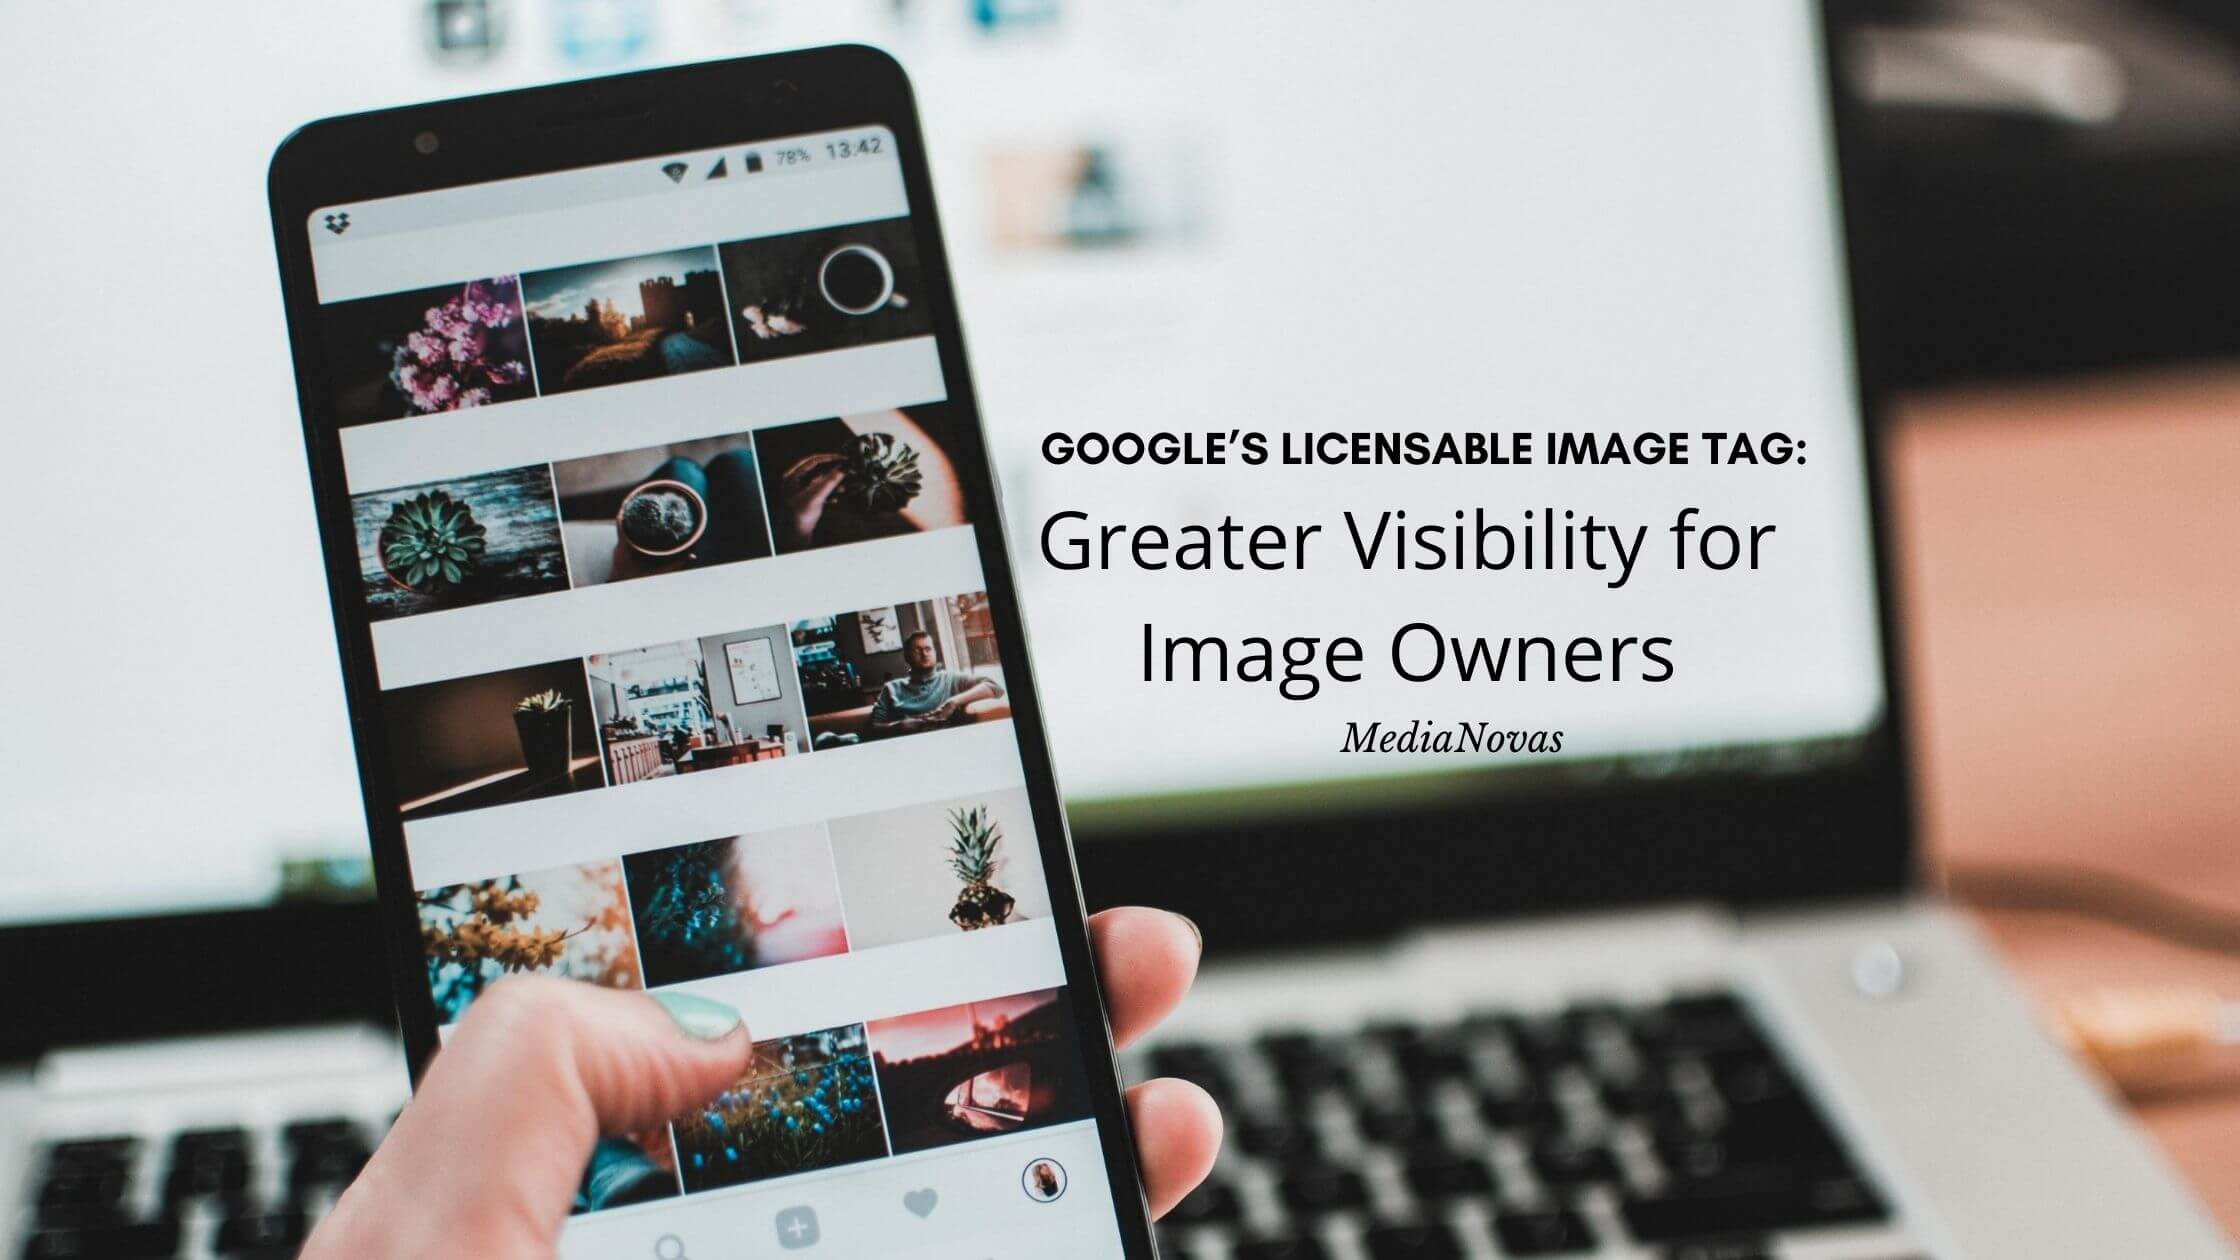 Greater Visibility for Image Owners